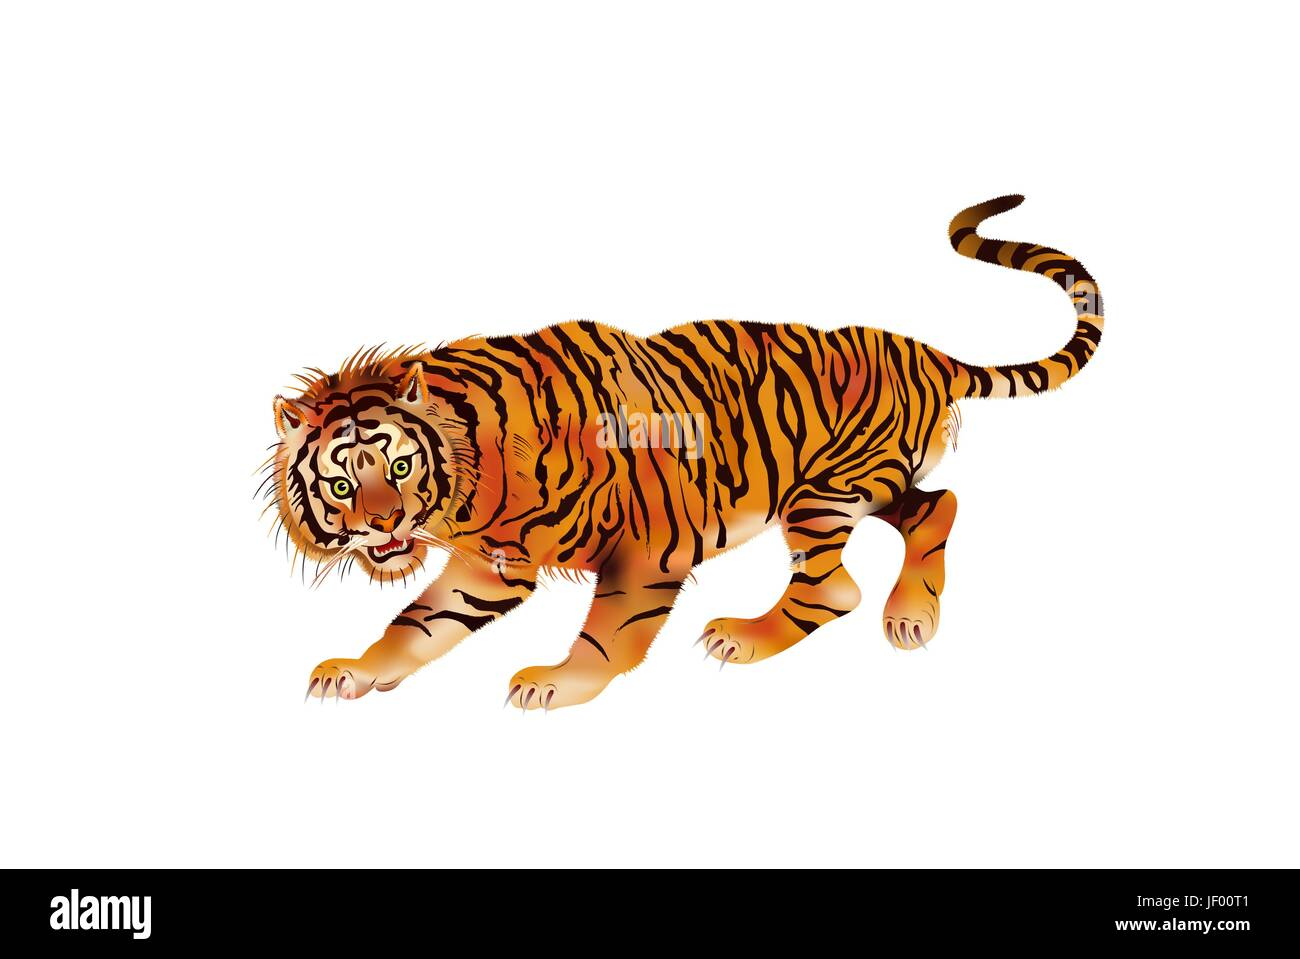 mammal, wild, cat, big cat, feline predator, tiger, energy, power, electricity, - Stock Vector